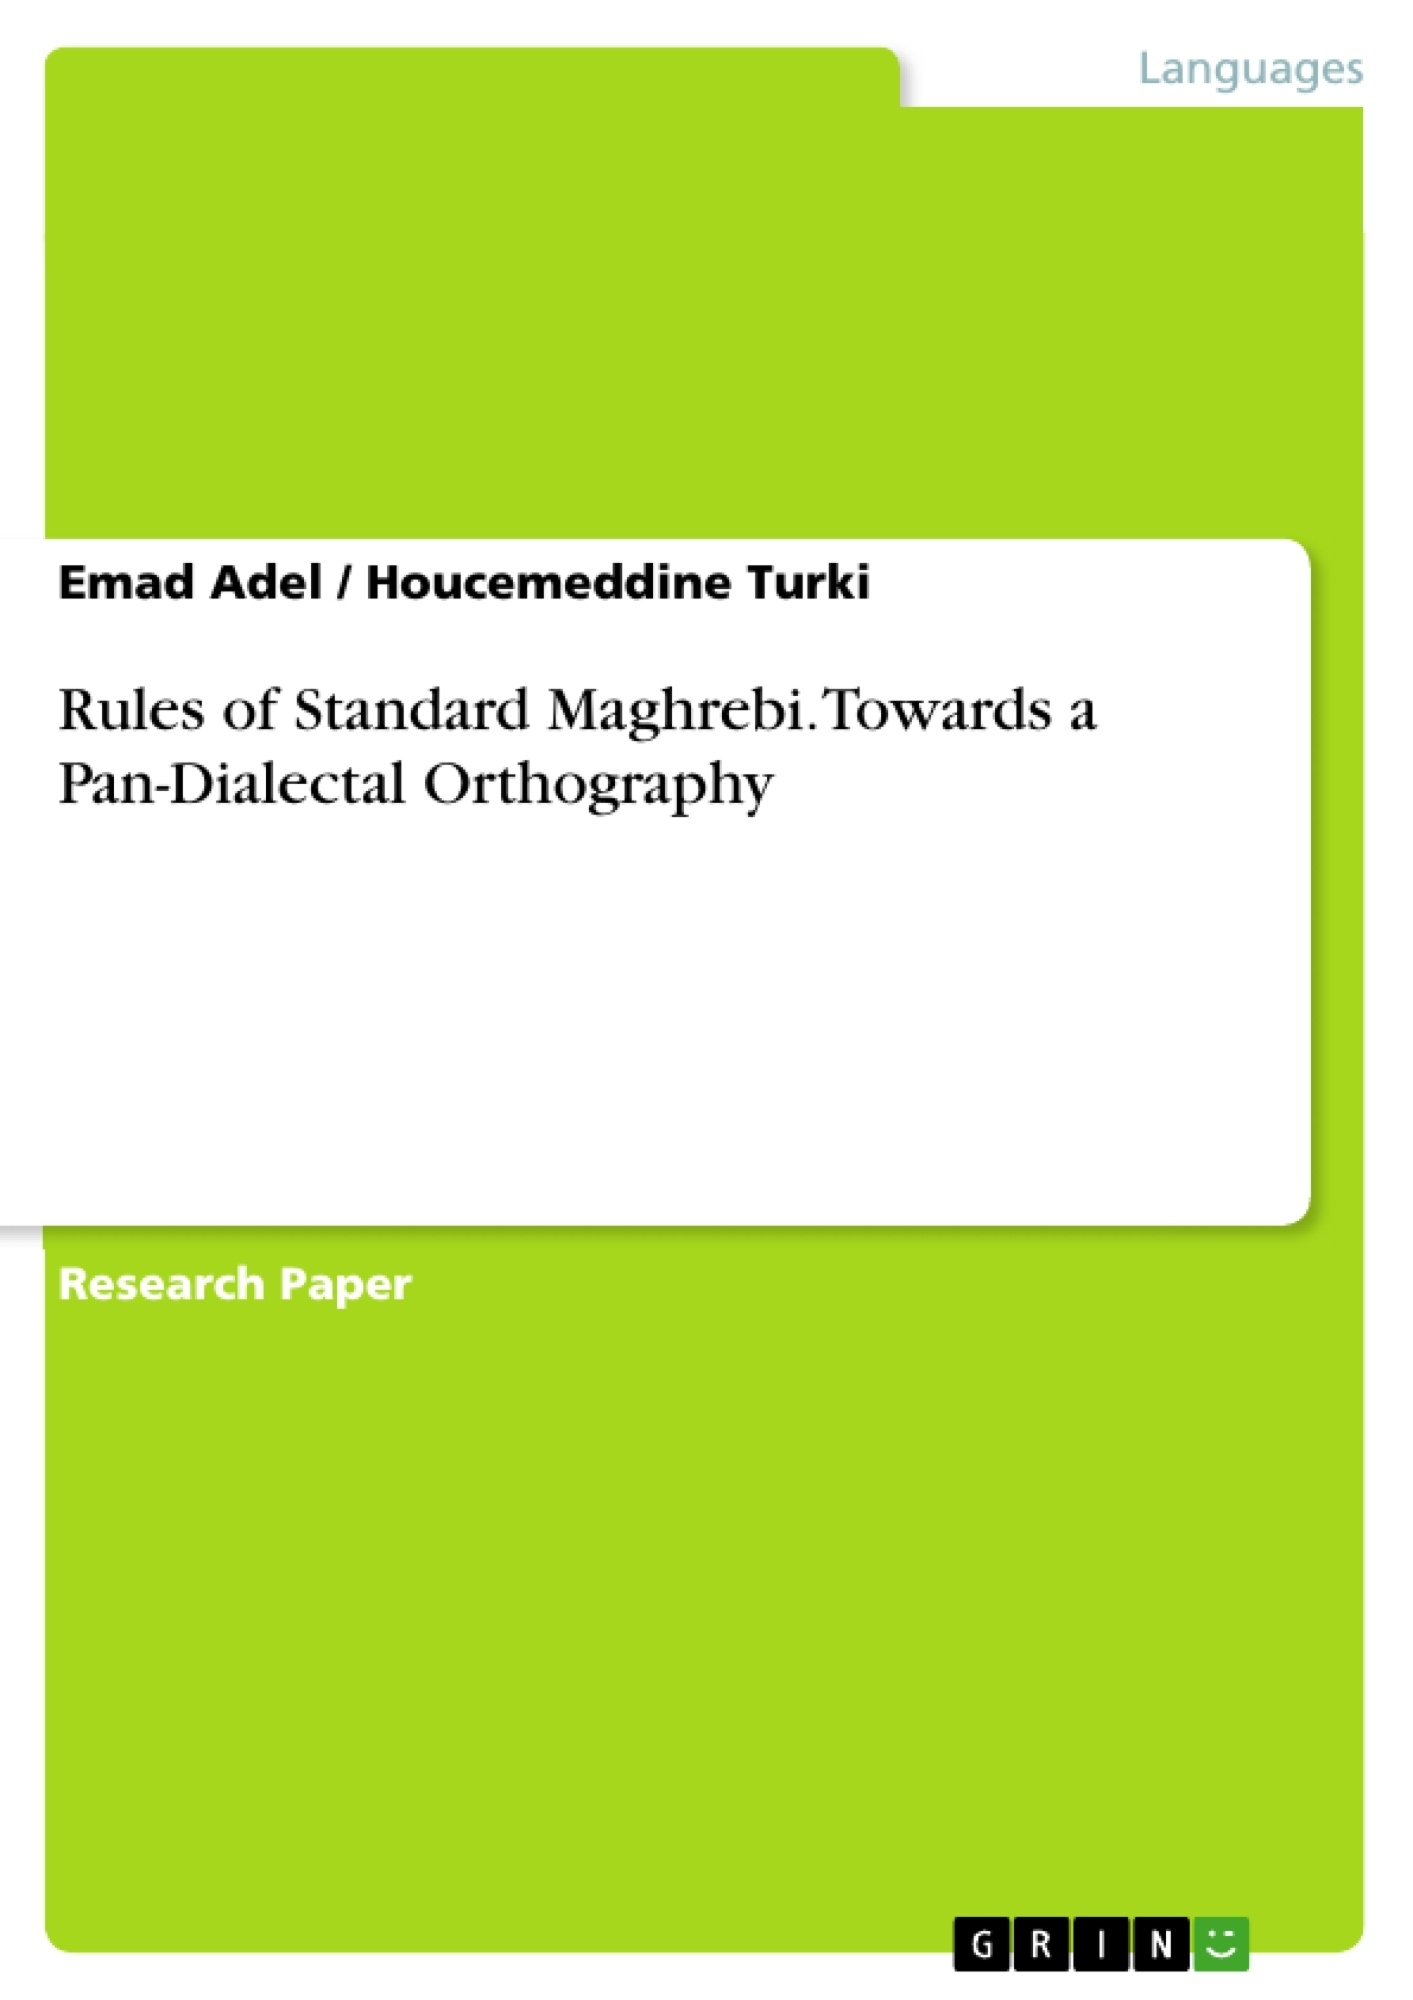 Title: Rules of Standard Maghrebi. Towards a Pan-Dialectal Orthography